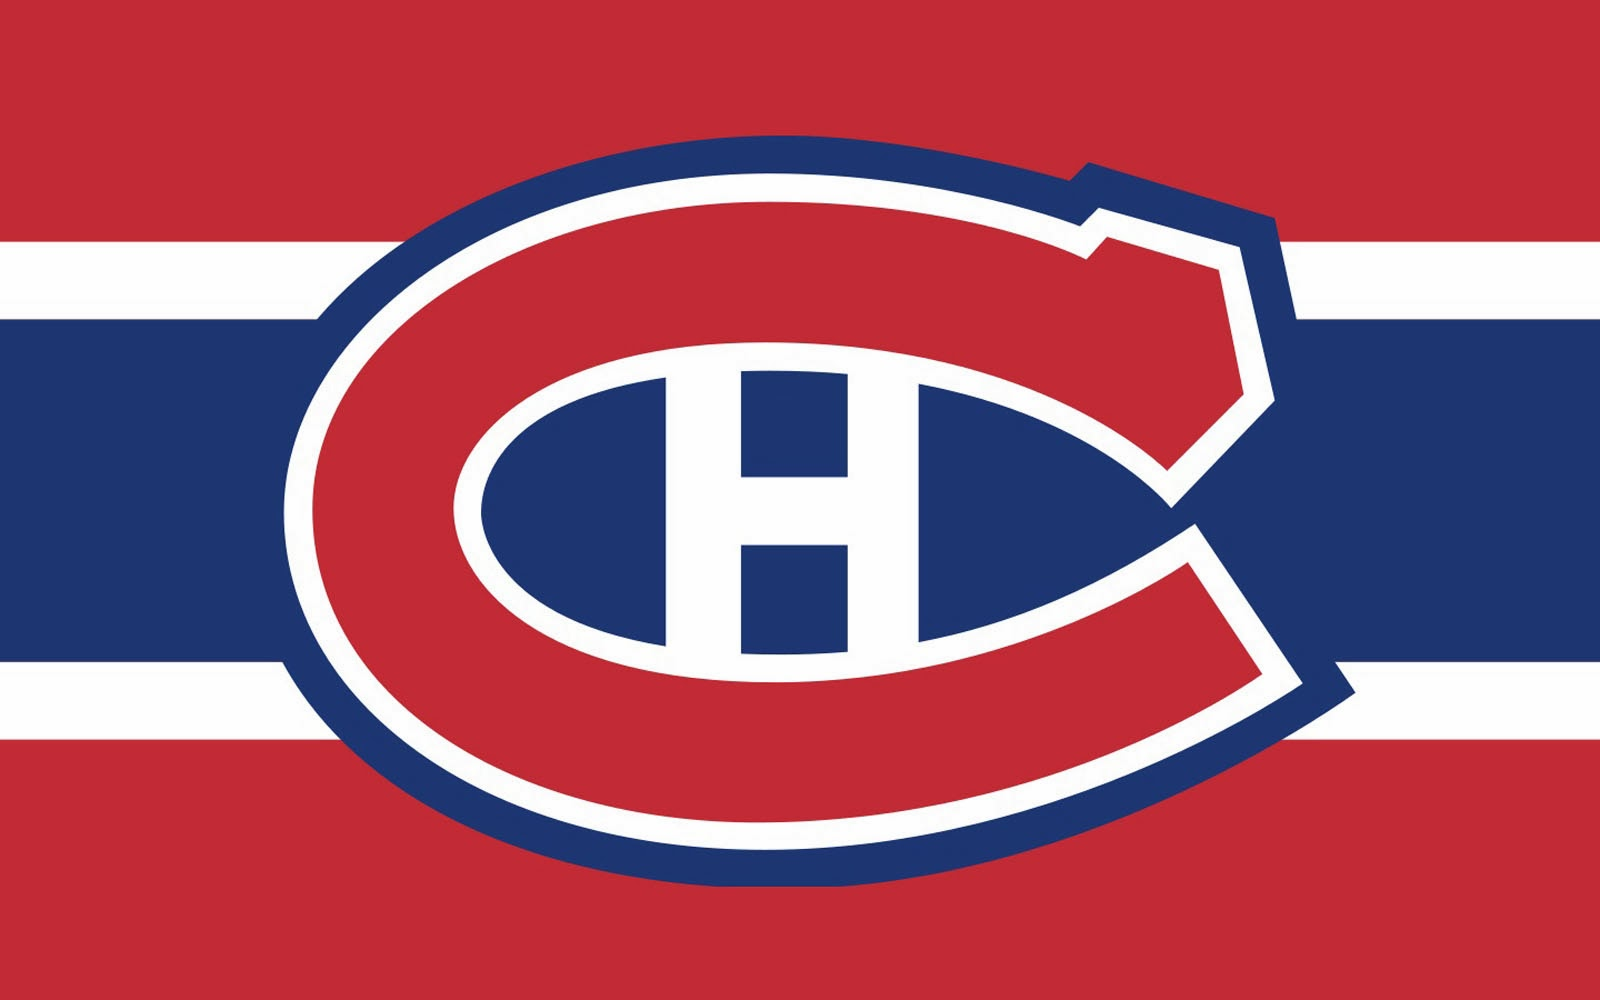 Clipart Of The Montreal Canadiens Logo Free Image